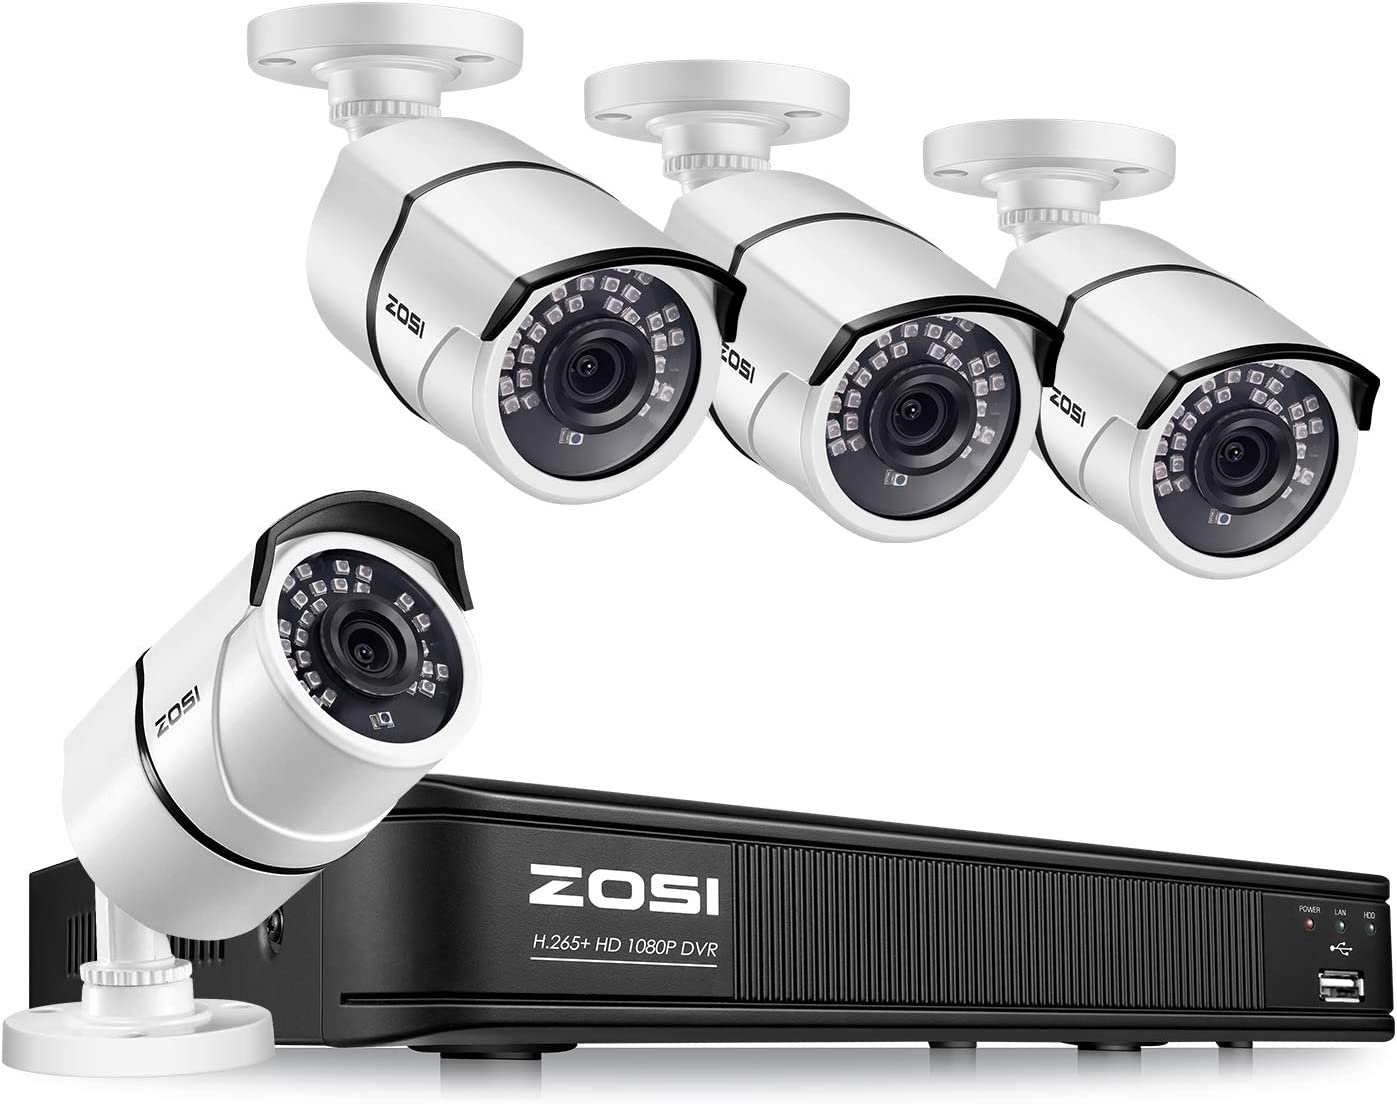 ZOSI H.265+1080P FHD Video Security Camera System,8 Channel CCTV DVR Recorder and 4 x 2.0MP 1080p Weatherproof Surveillance Cameras Outdoor Indoor, 120ft Night Vision, Remote Access (No HDD)